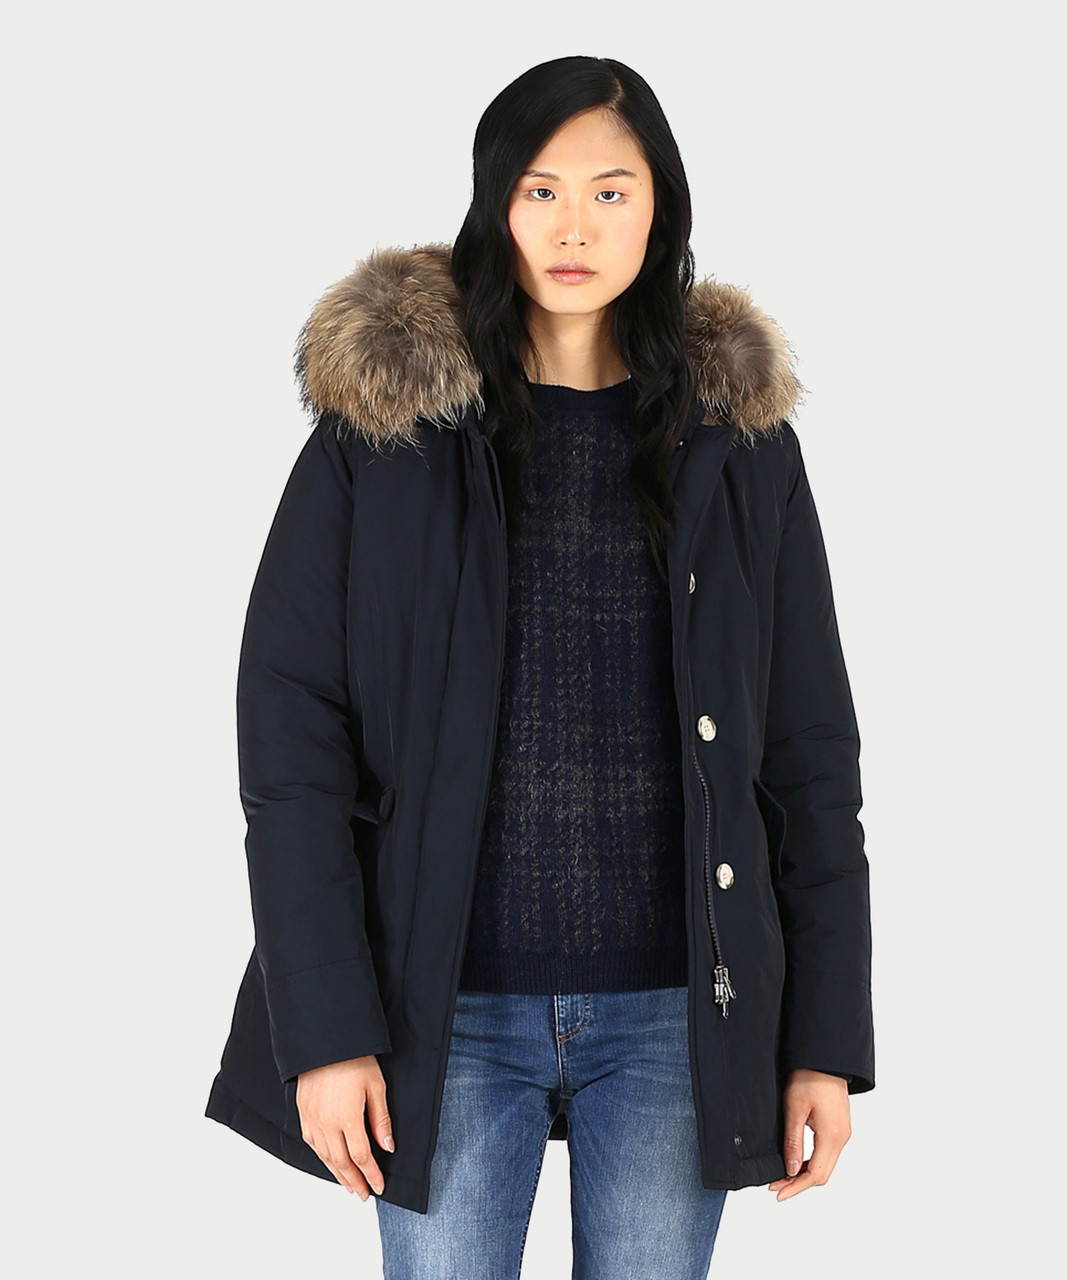 newest e8f8f 81ebe Women's Luxury Arctic Parka